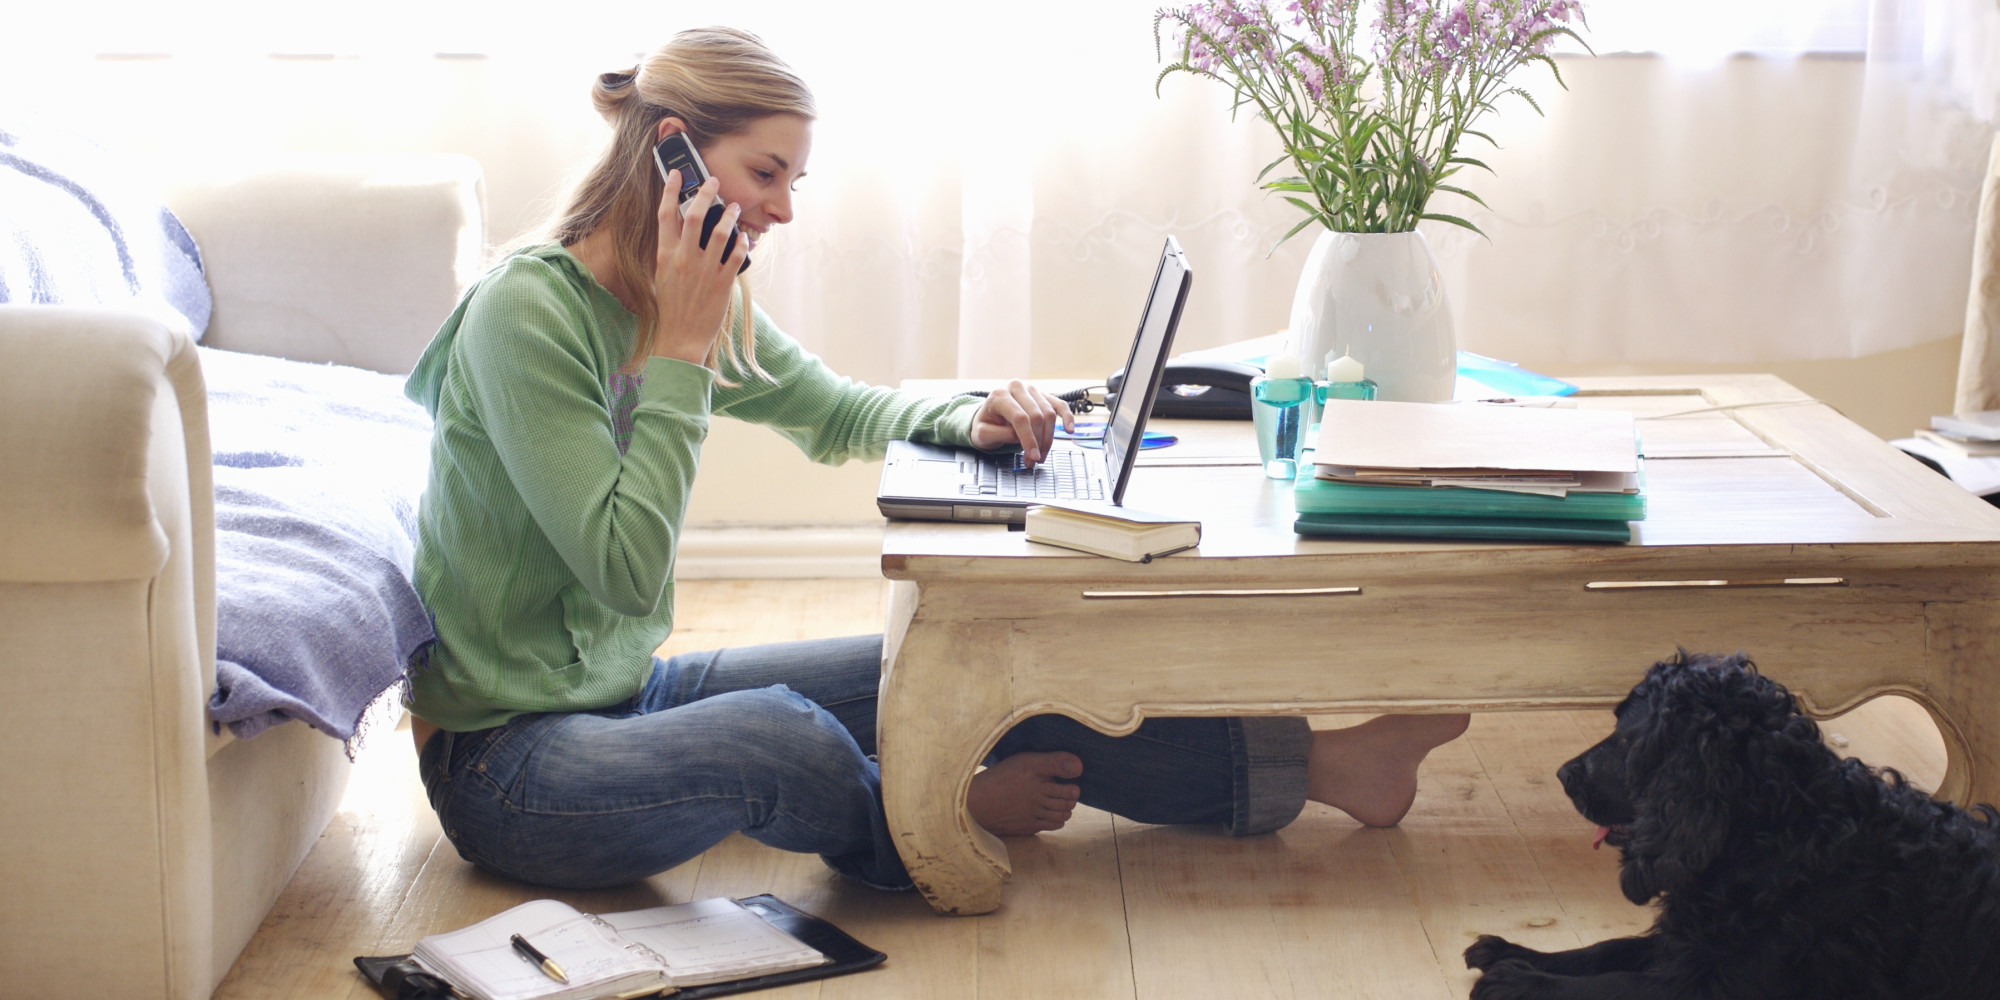 Mid adult woman sitting on floor, leaning on sofa, talking on, using laptop, side view